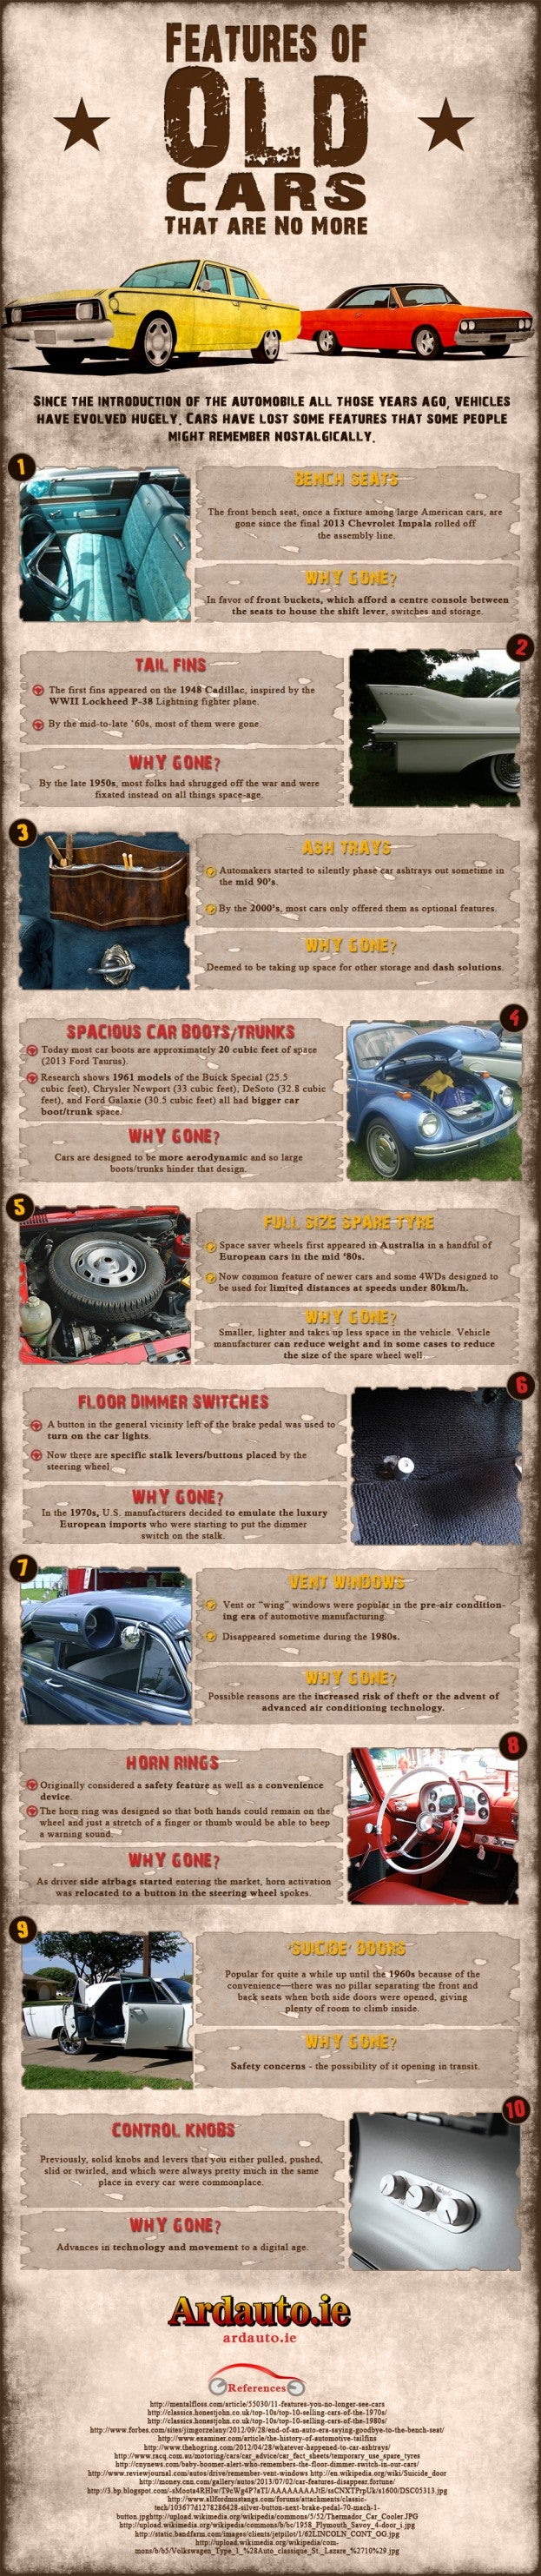 Features of old cars infographic